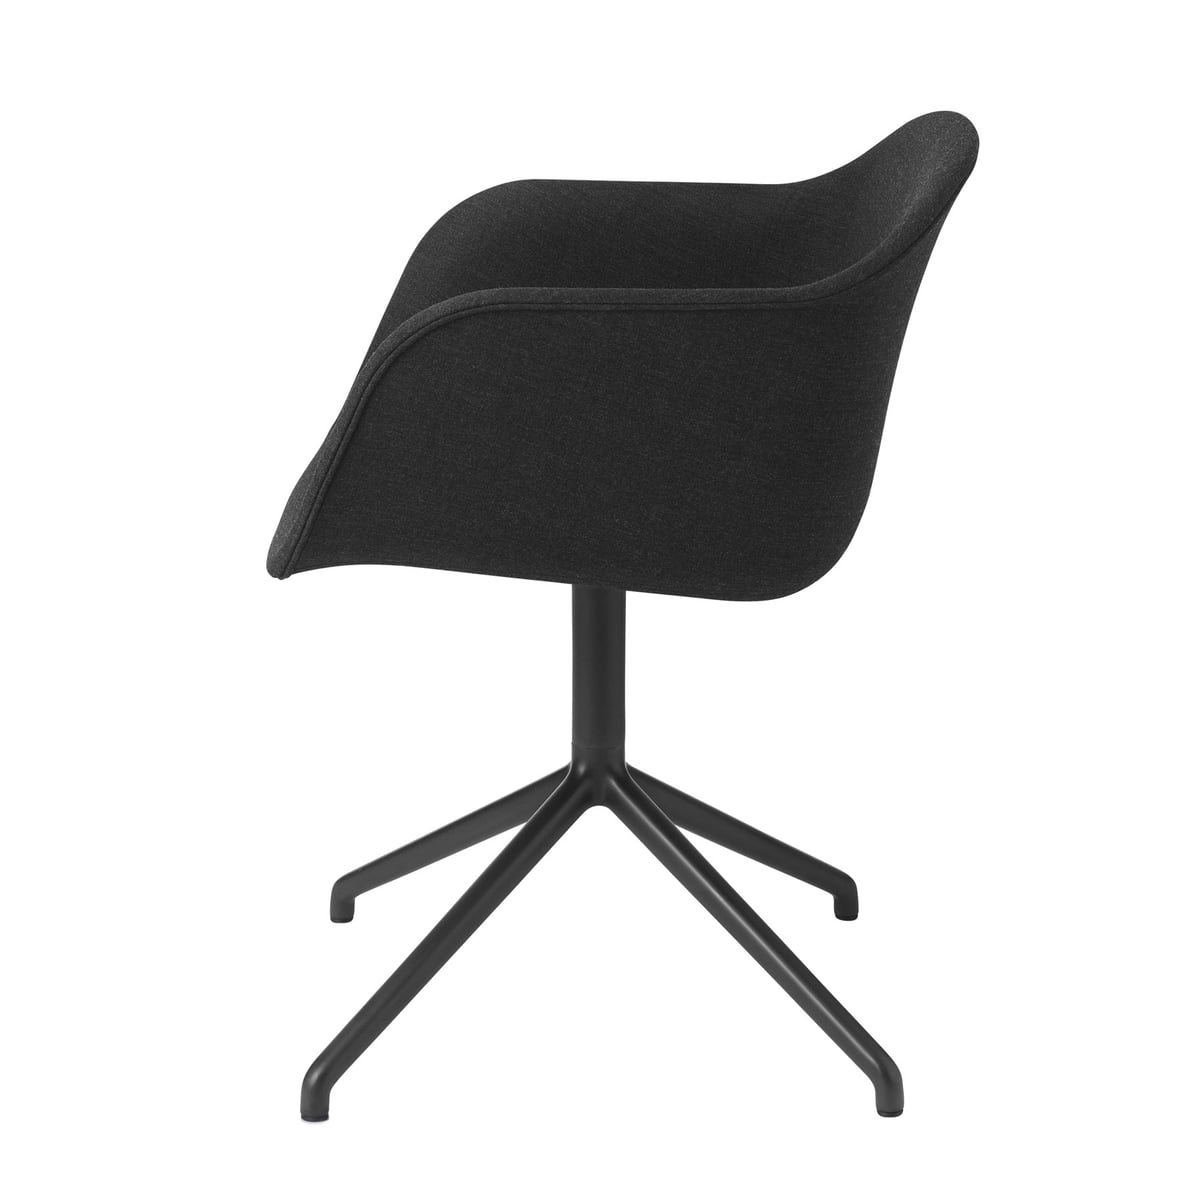 the fiber chair swivel base by muuto connox. Black Bedroom Furniture Sets. Home Design Ideas